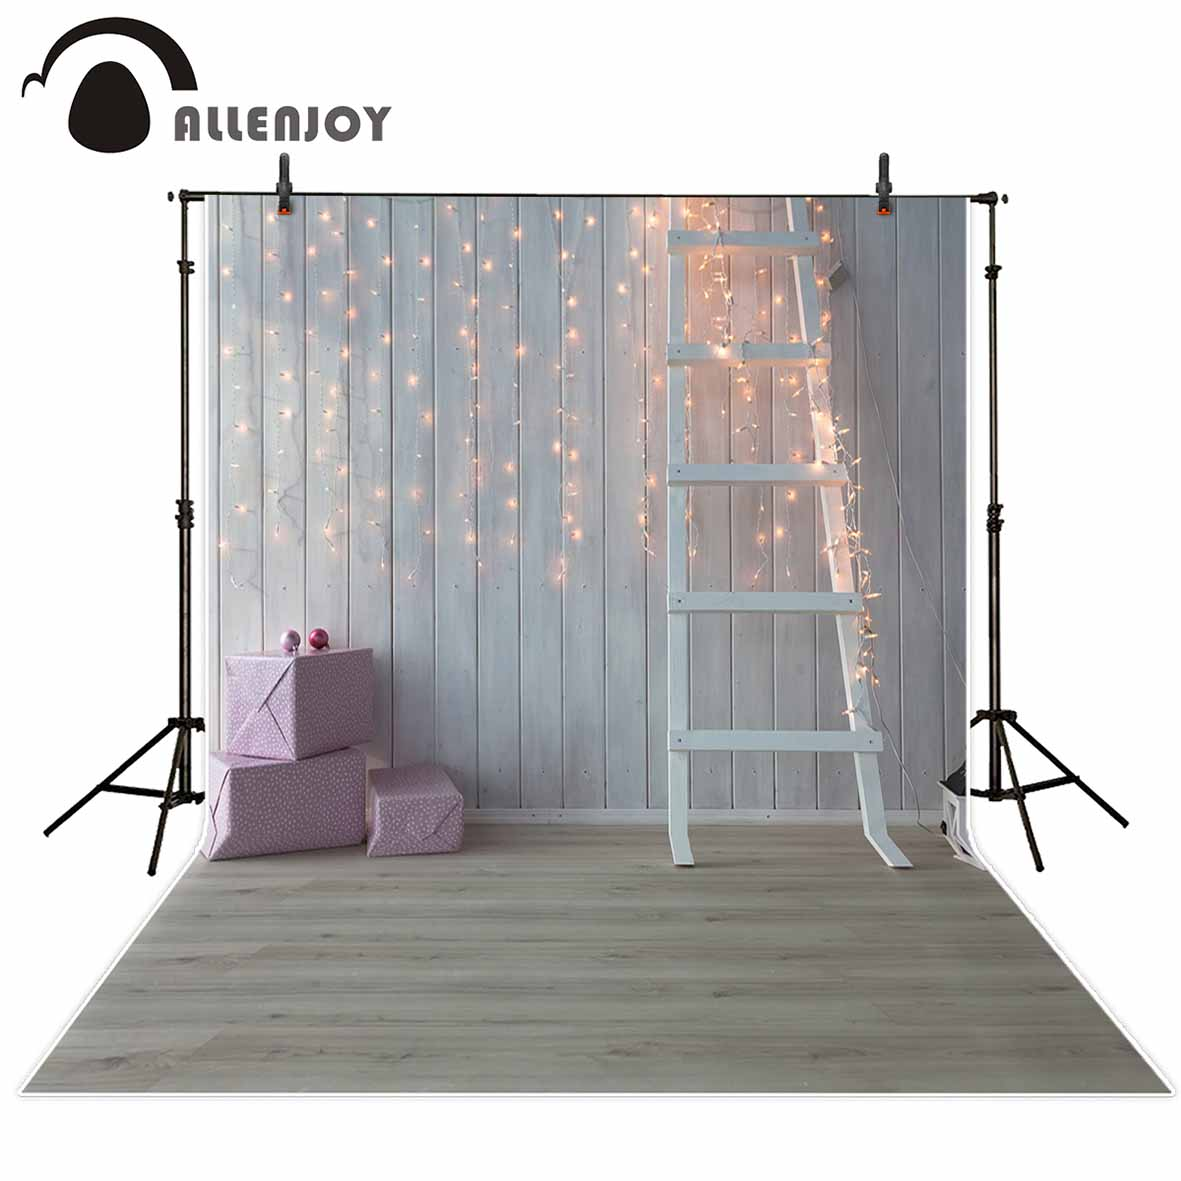 Allenjoy photo backdrop children sweet room white wood wall ladder glitter background photobooth original design vinyl fabric